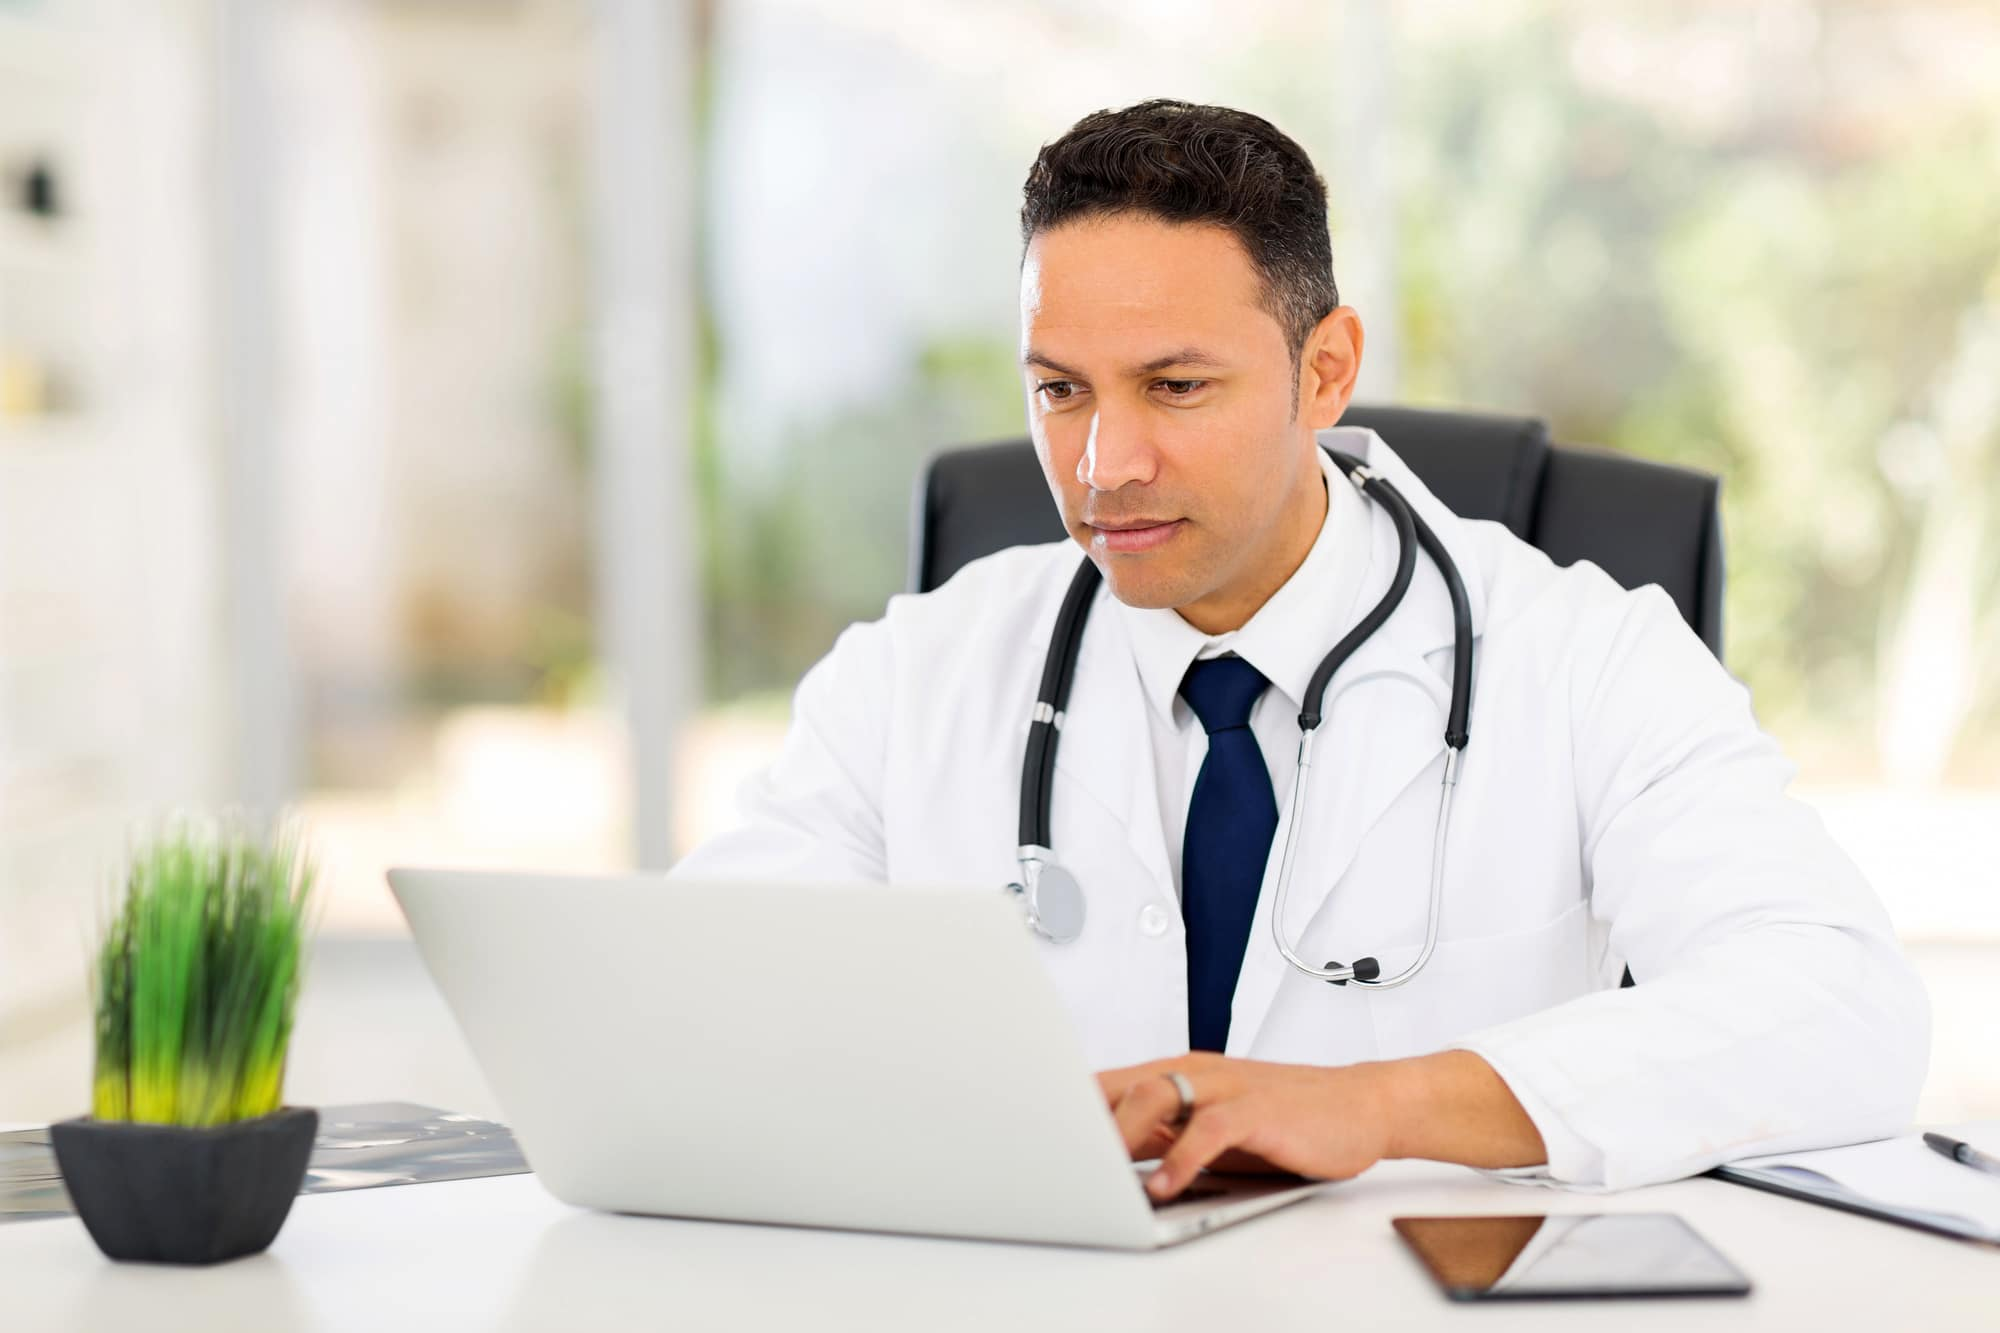 medical professional looking at laptop